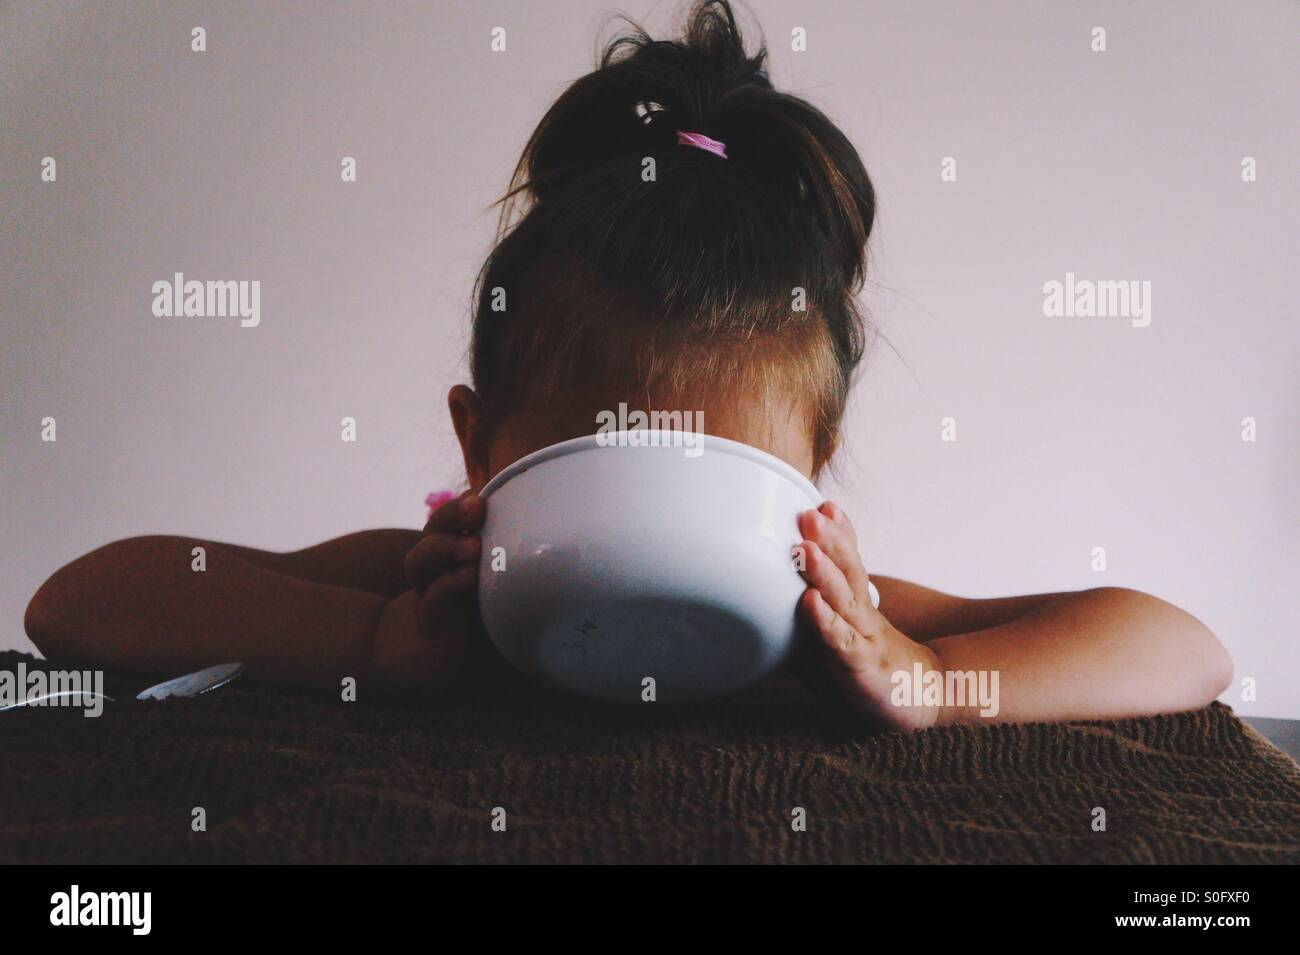 That last bit of milk is the best part. - Stock Image